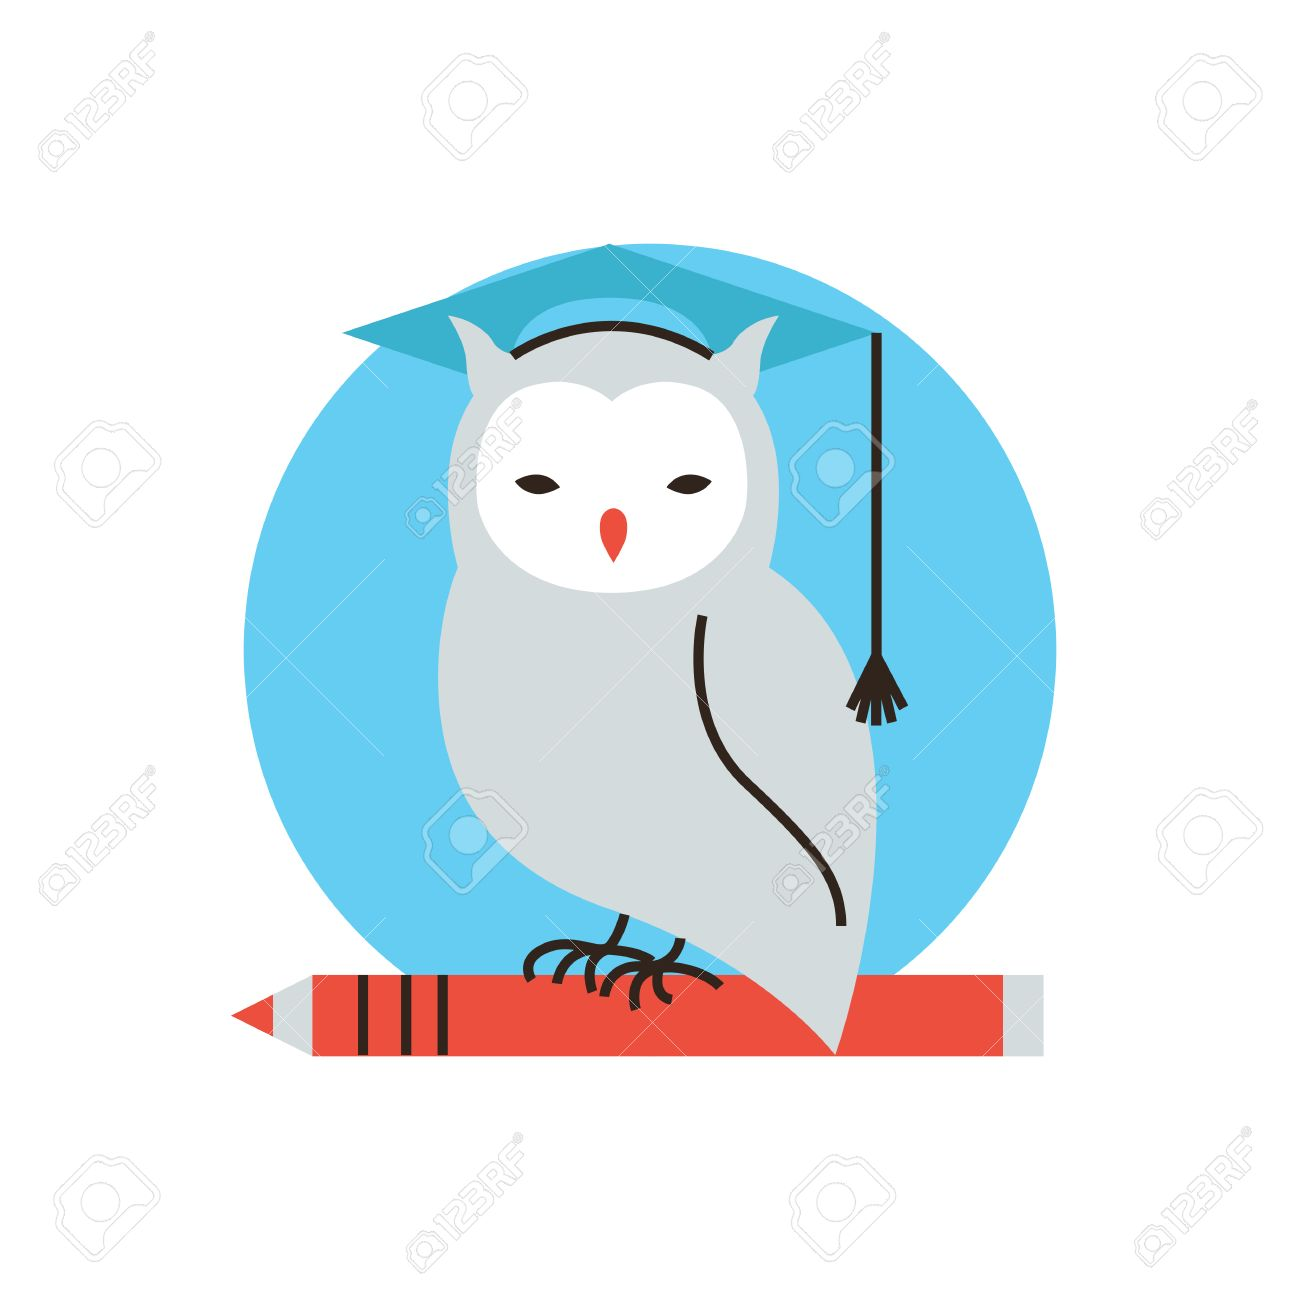 Thin Line Icon With Flat Design Element Of Wise Owl, University ...